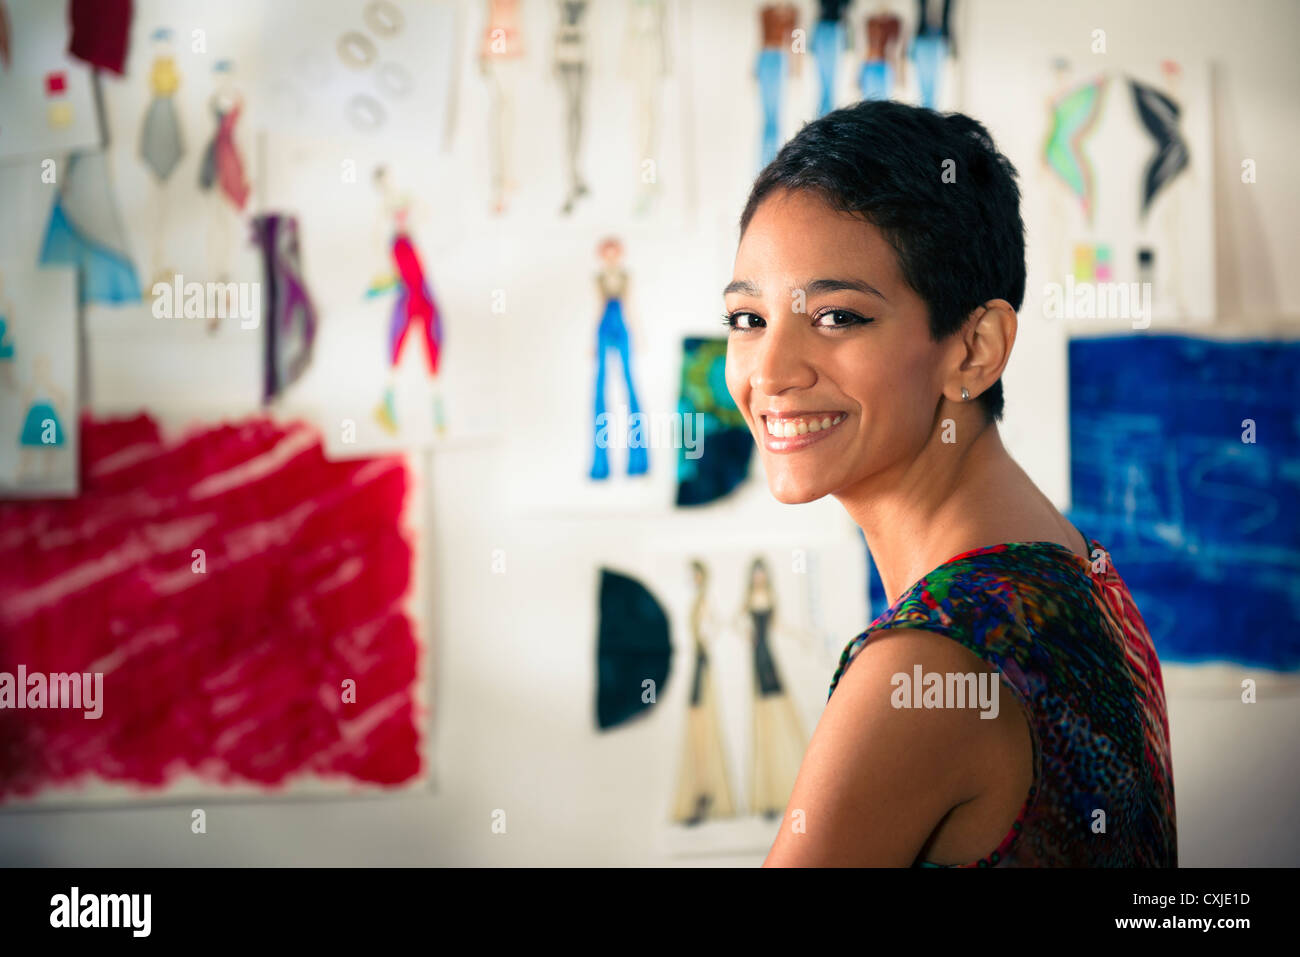 Confident entrepreneur, portrait of happy hispanic young woman working as fashion designer and dressmaker in atelier - Stock Image